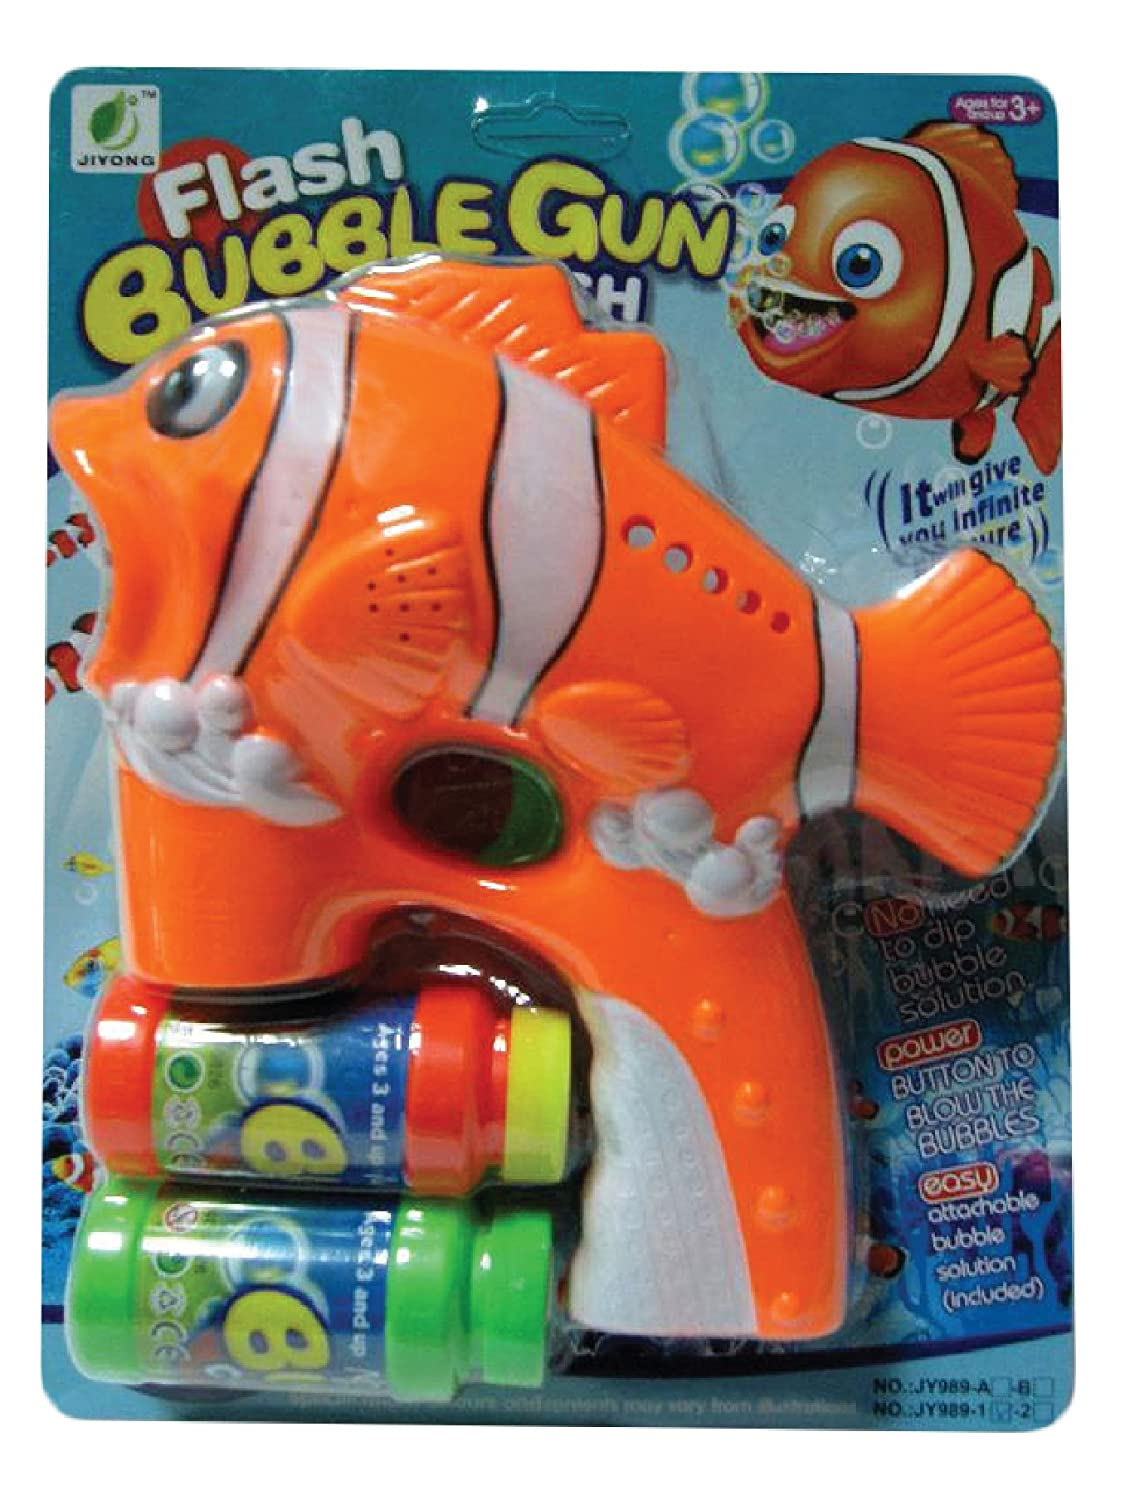 Amazon.com: Train Bubble Gun Blaster Toy with LED Lights, Extra Bottle Refill, and 3x AA Batteries Included (Colors Vary): Arts, Crafts & Sewing